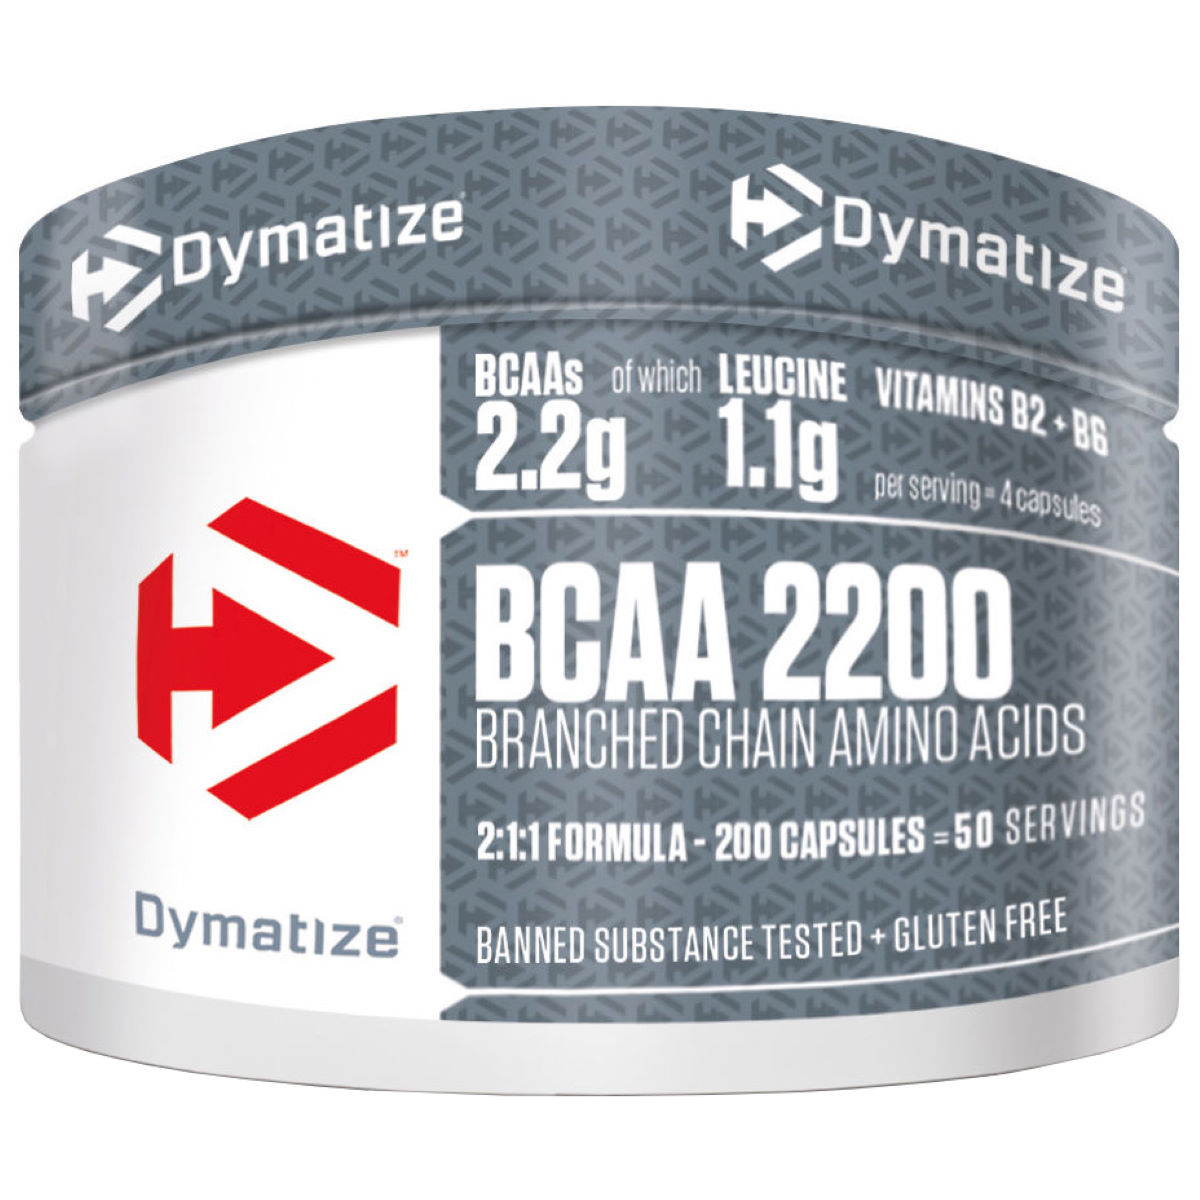 Image of Capsules Dymatize BCAA 2200 (200) - 200 Capsules Unflavoured | BCAA